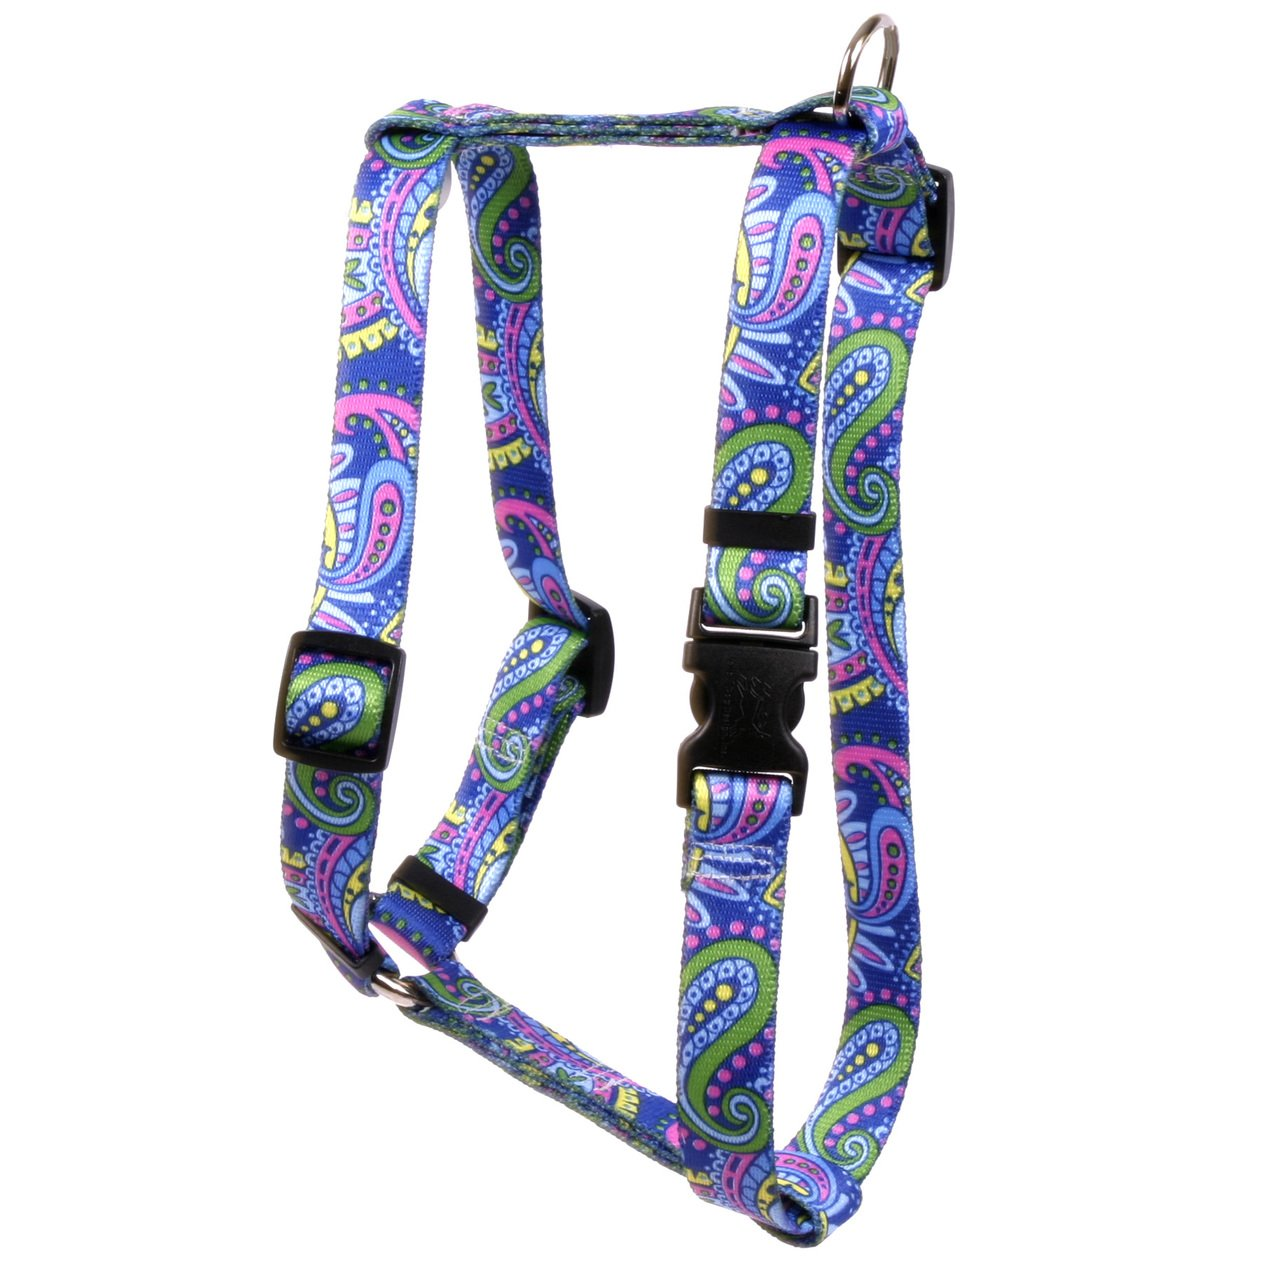 Yellow Dog Design Paisley Power Roman Style H Dog Harness, X-Large-1'' Wide and fits Chest of 28 to 36'' by Yellow Dog Design